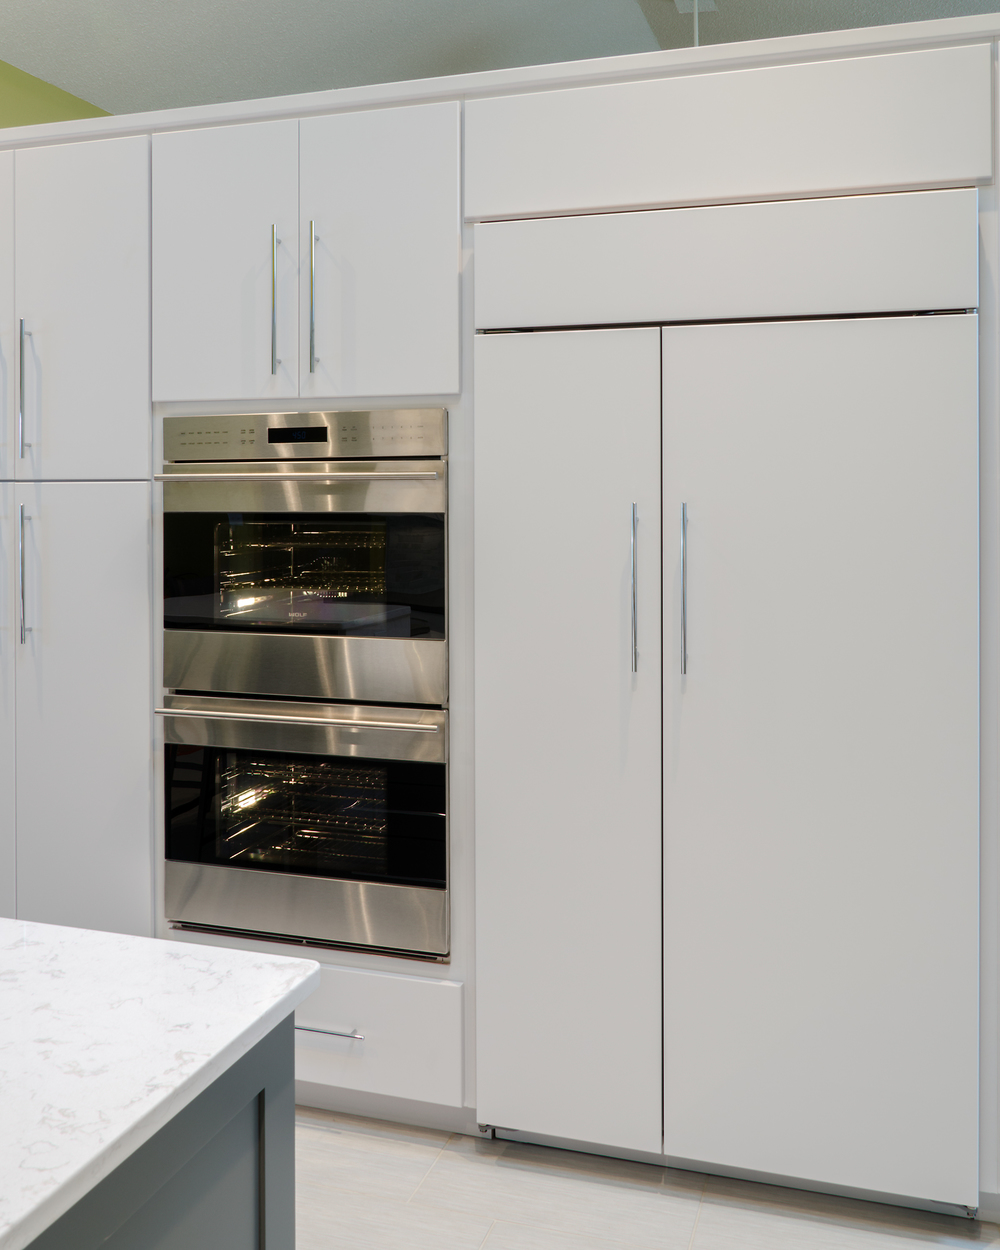 Custom-Kitchens-Paquett-Kitchen-Oven-Fridge-Wall-31814.jpg